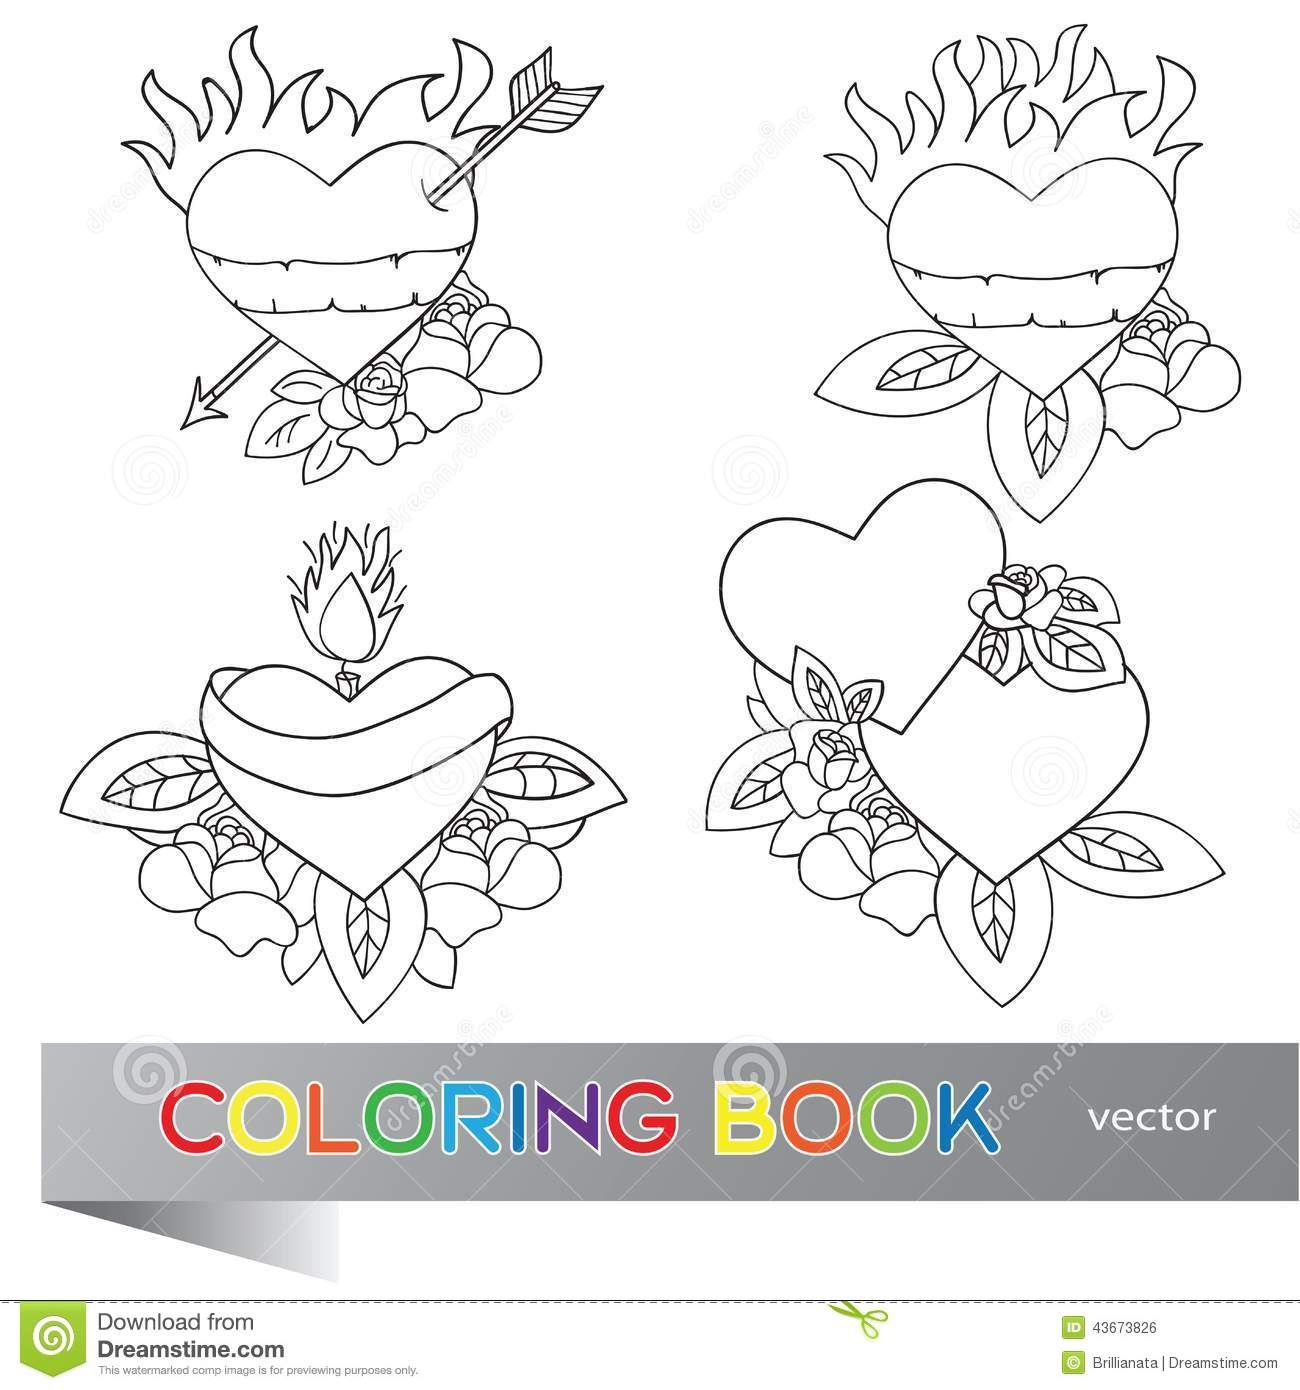 skull coloring pages - stock illustration heart tattoo design coloring book flash set image